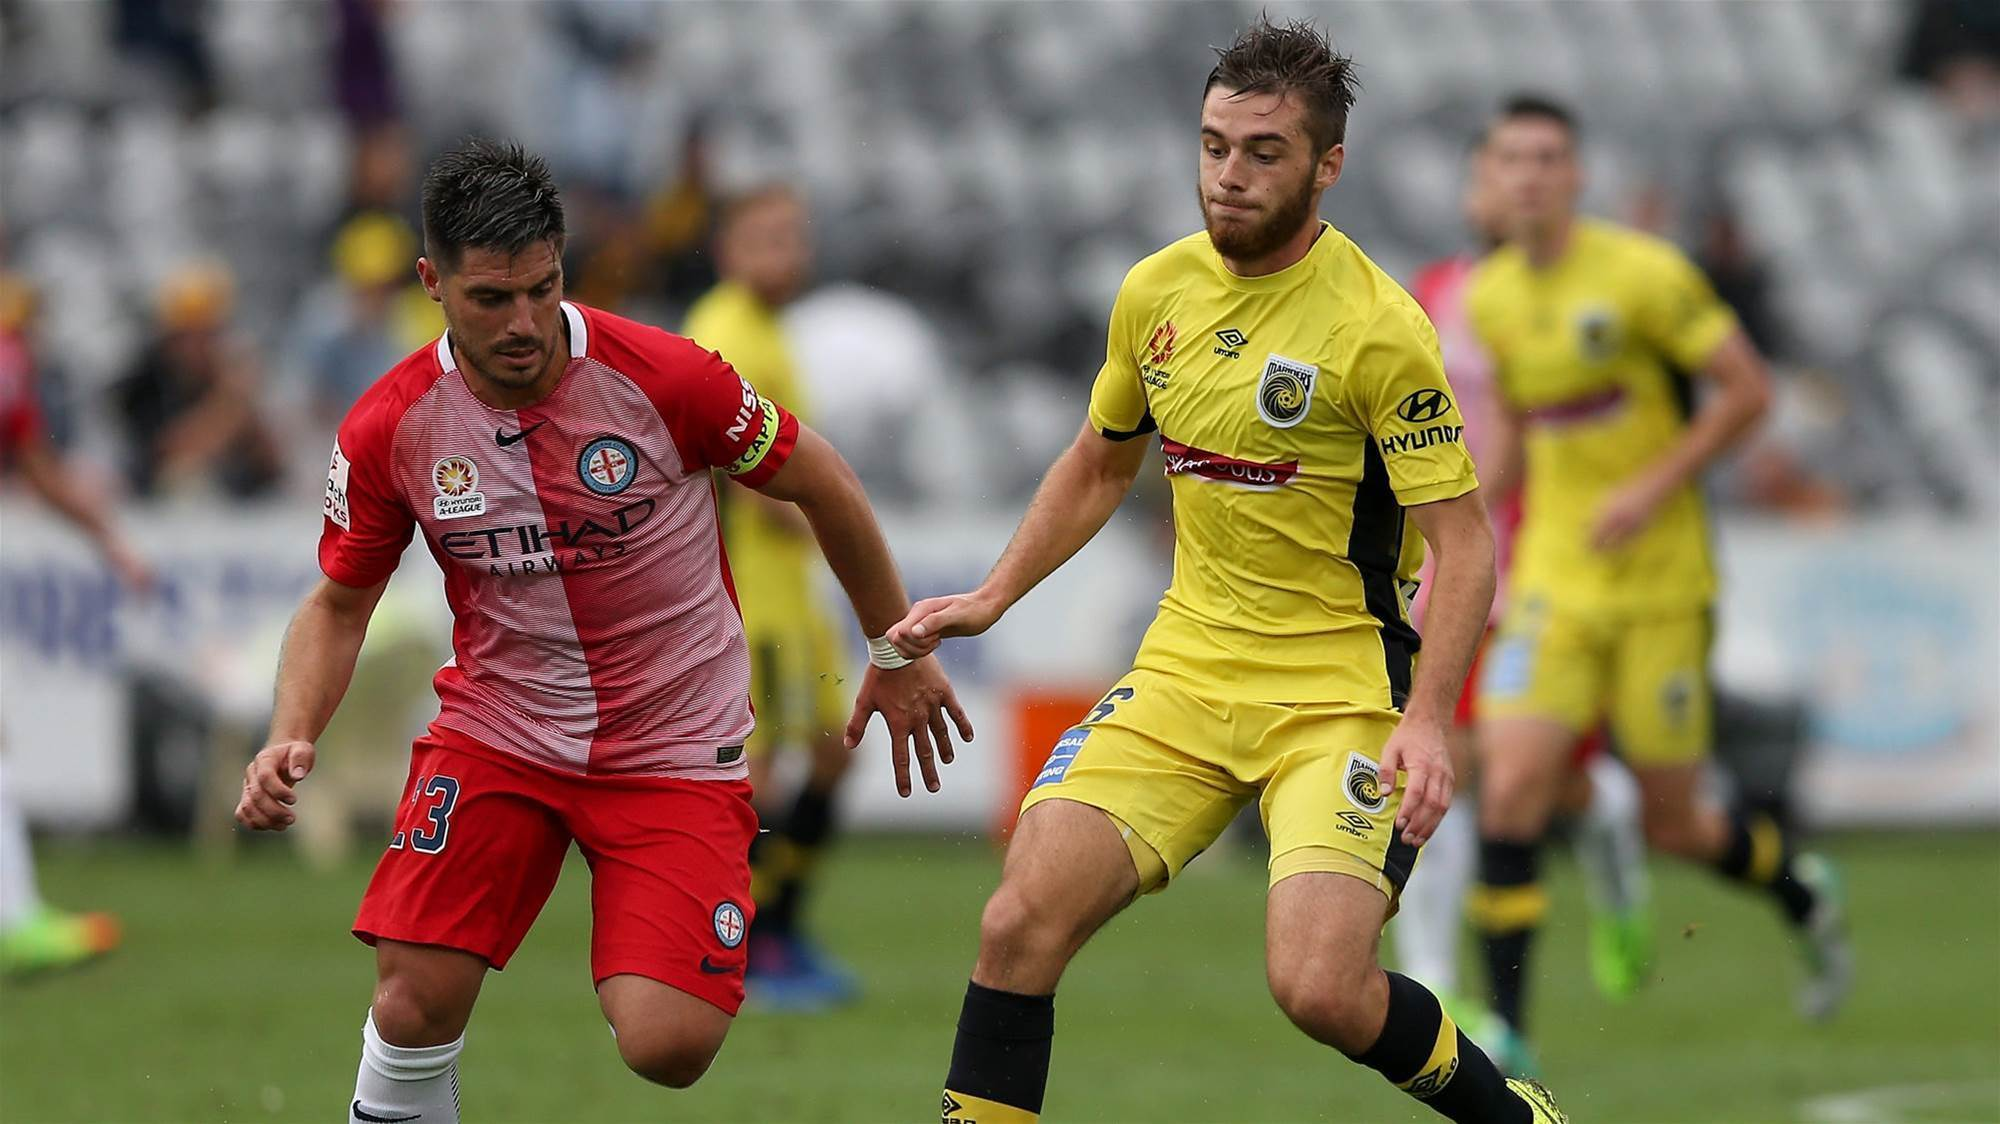 City defeat Mariners in friendly